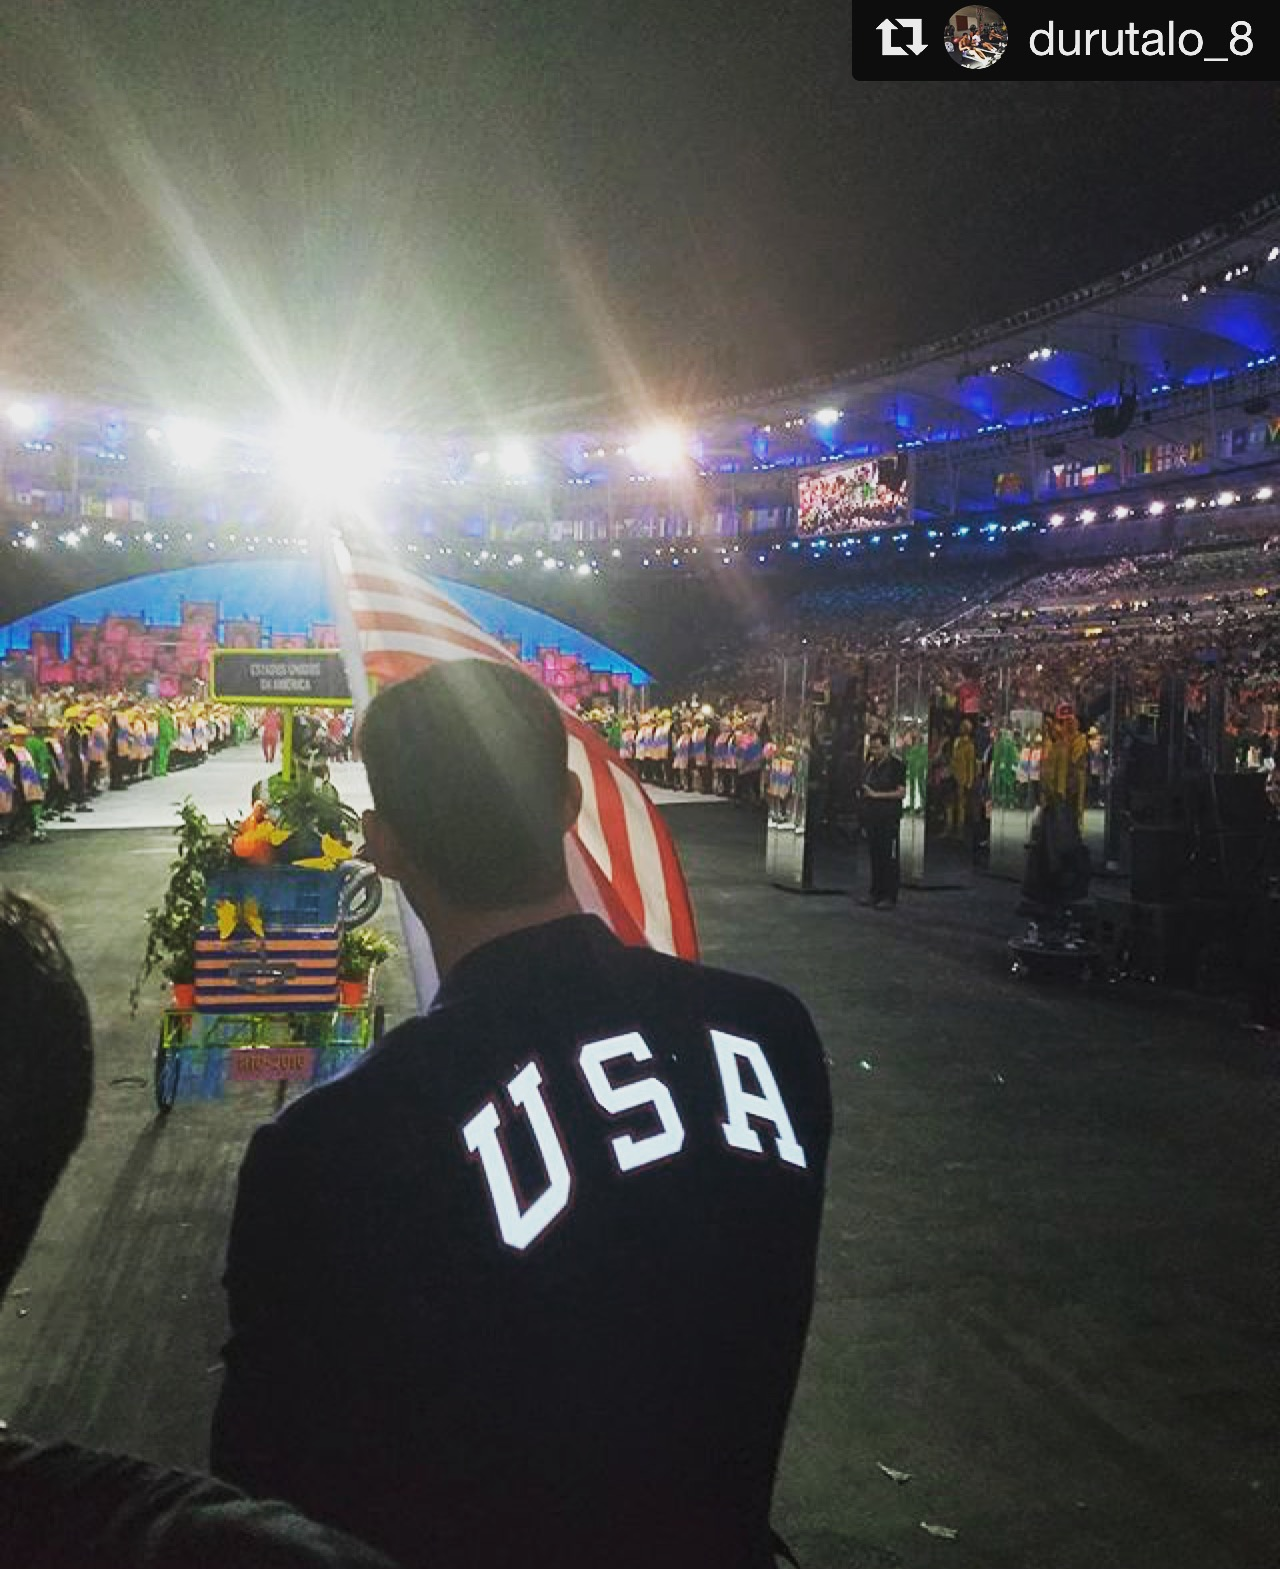 Men's Eagle Andrew Durutalo walking beside Michael Phelps, USA flag bearer, during the Olympic opening ceremonies